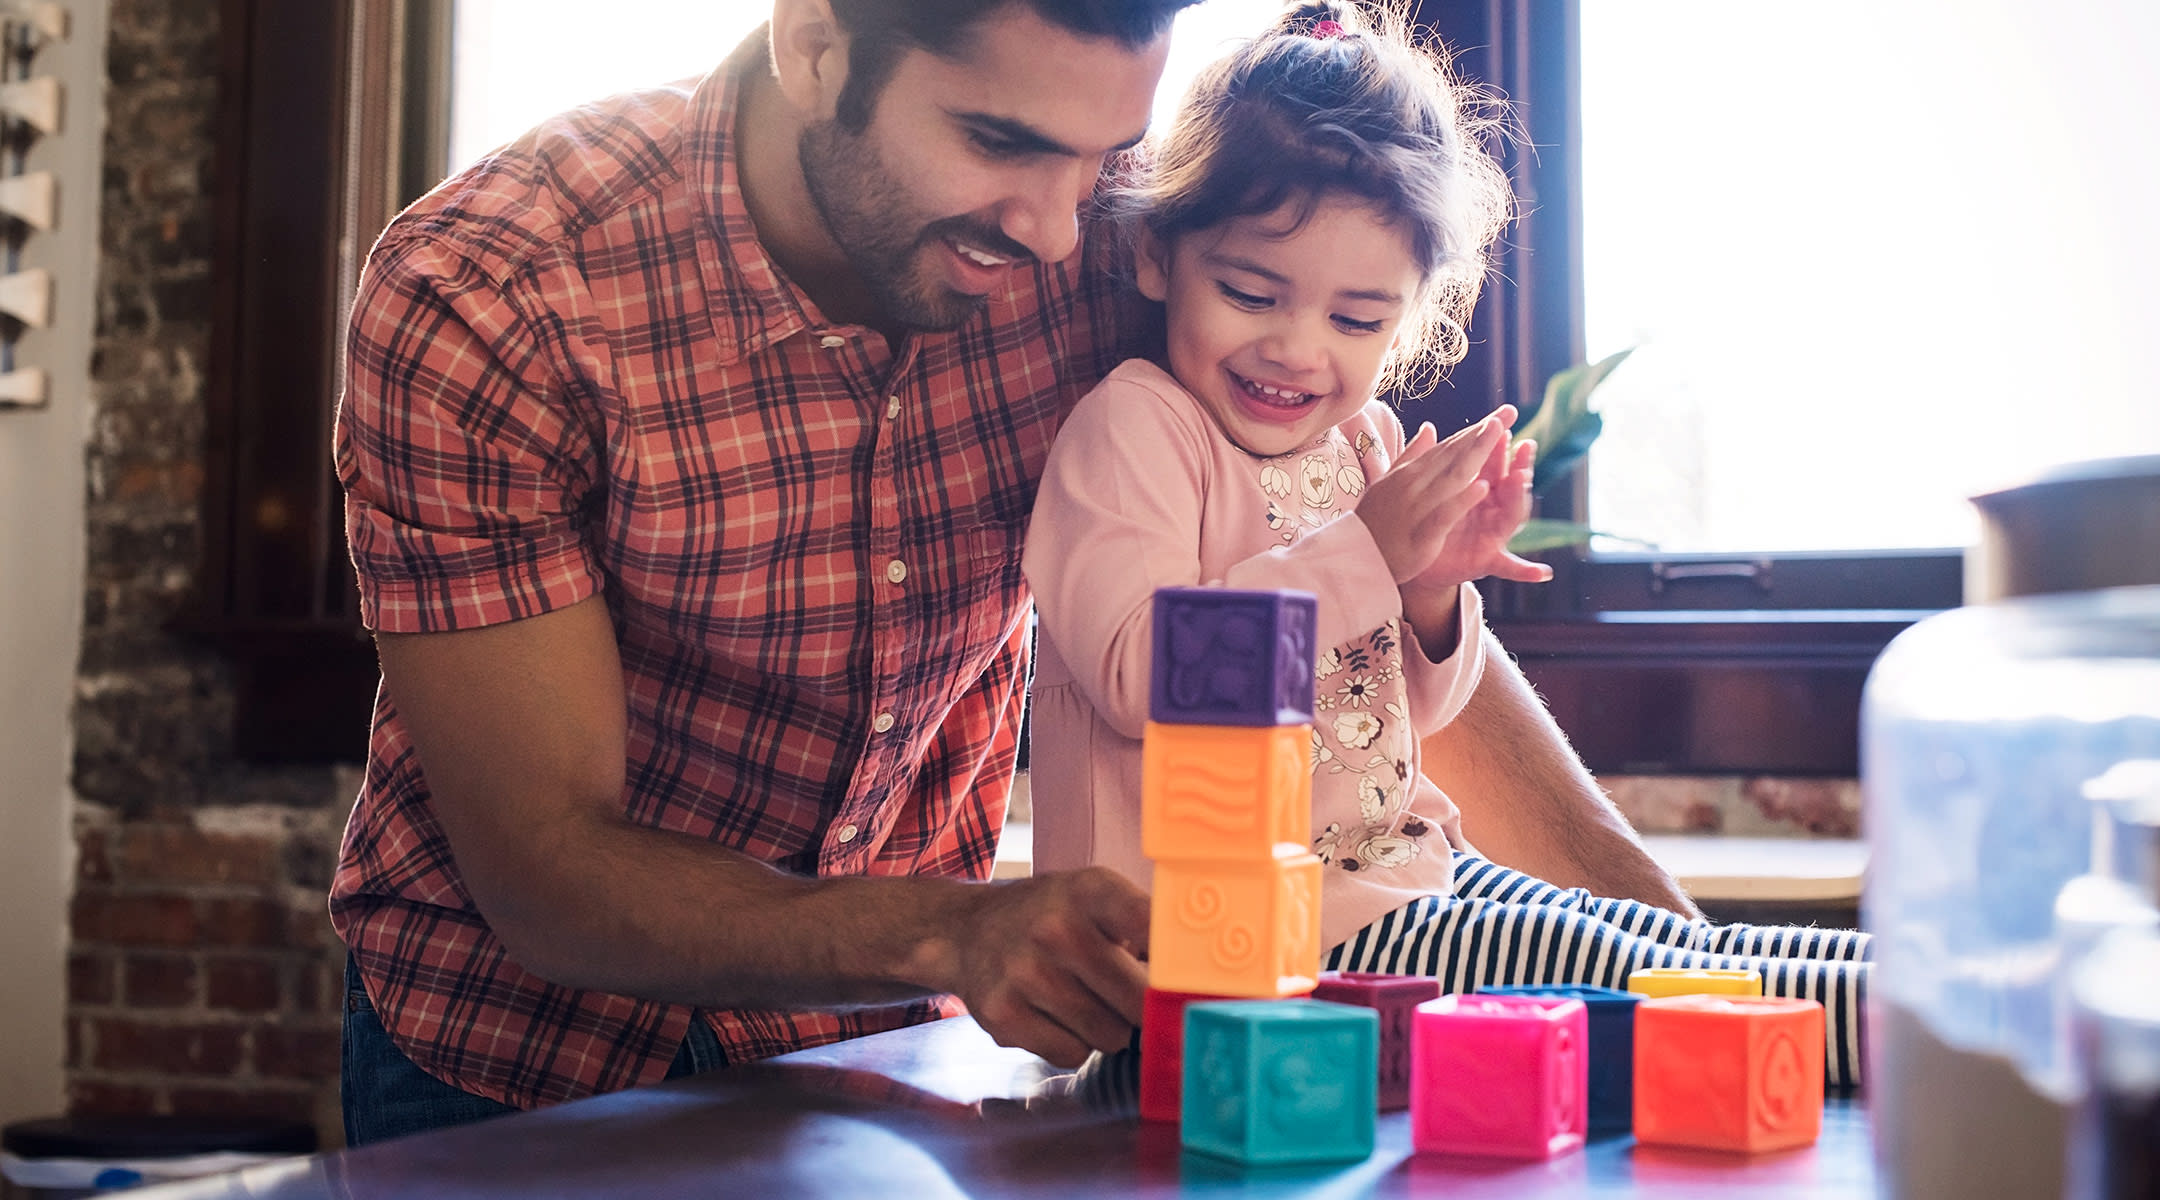 dad playing blocks with his daughter at home on the weekday